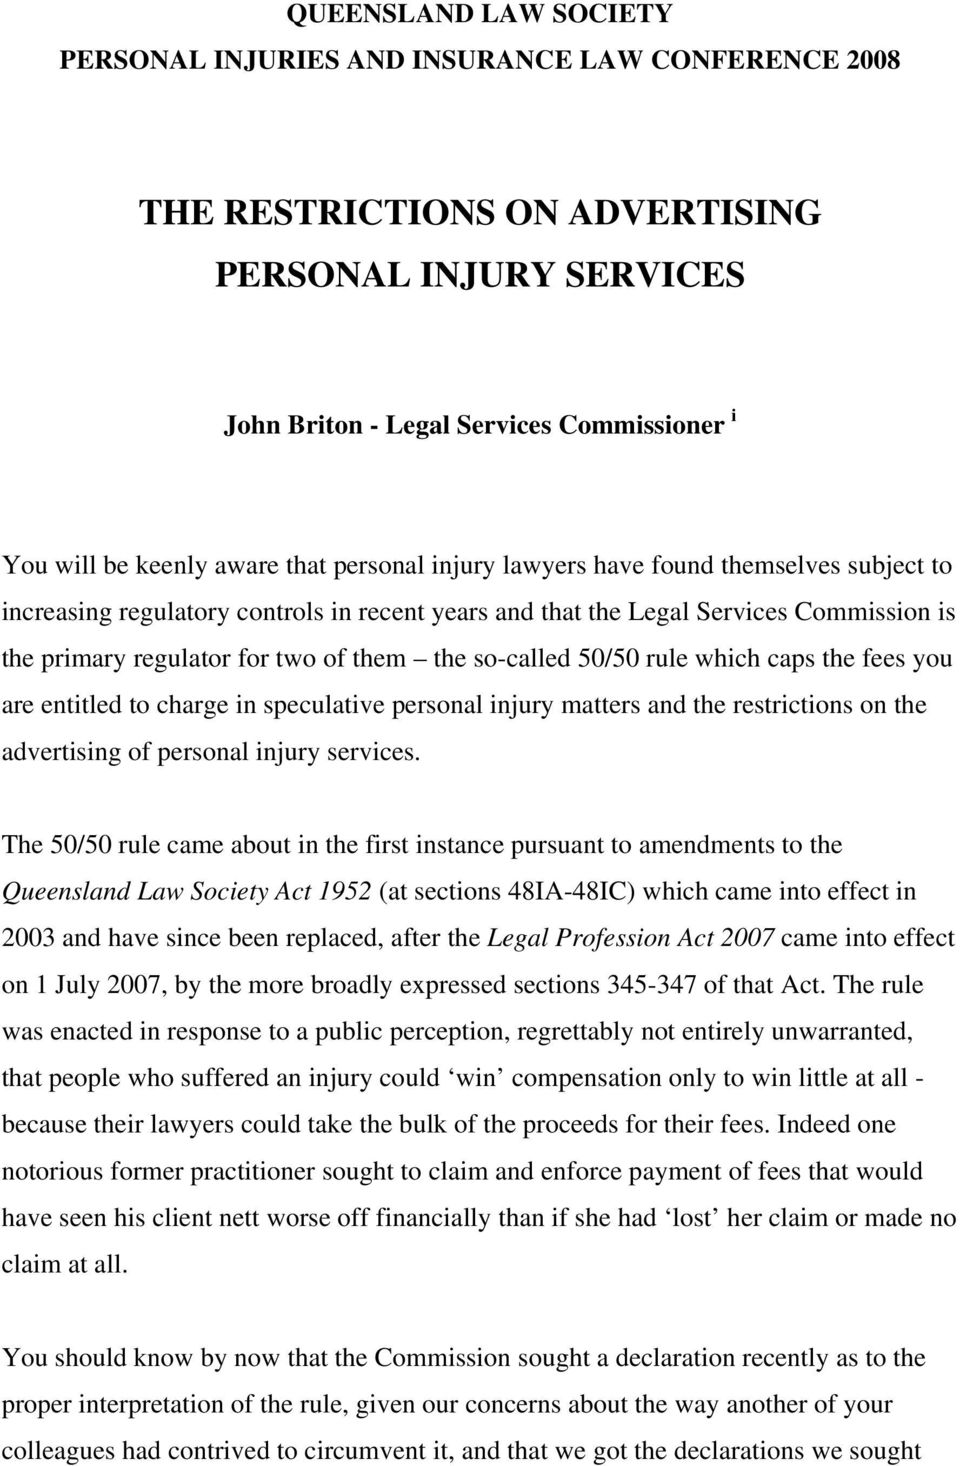 so-called 50/50 rule which caps the fees you are entitled to charge in speculative personal injury matters and the restrictions on the advertising of personal injury services.